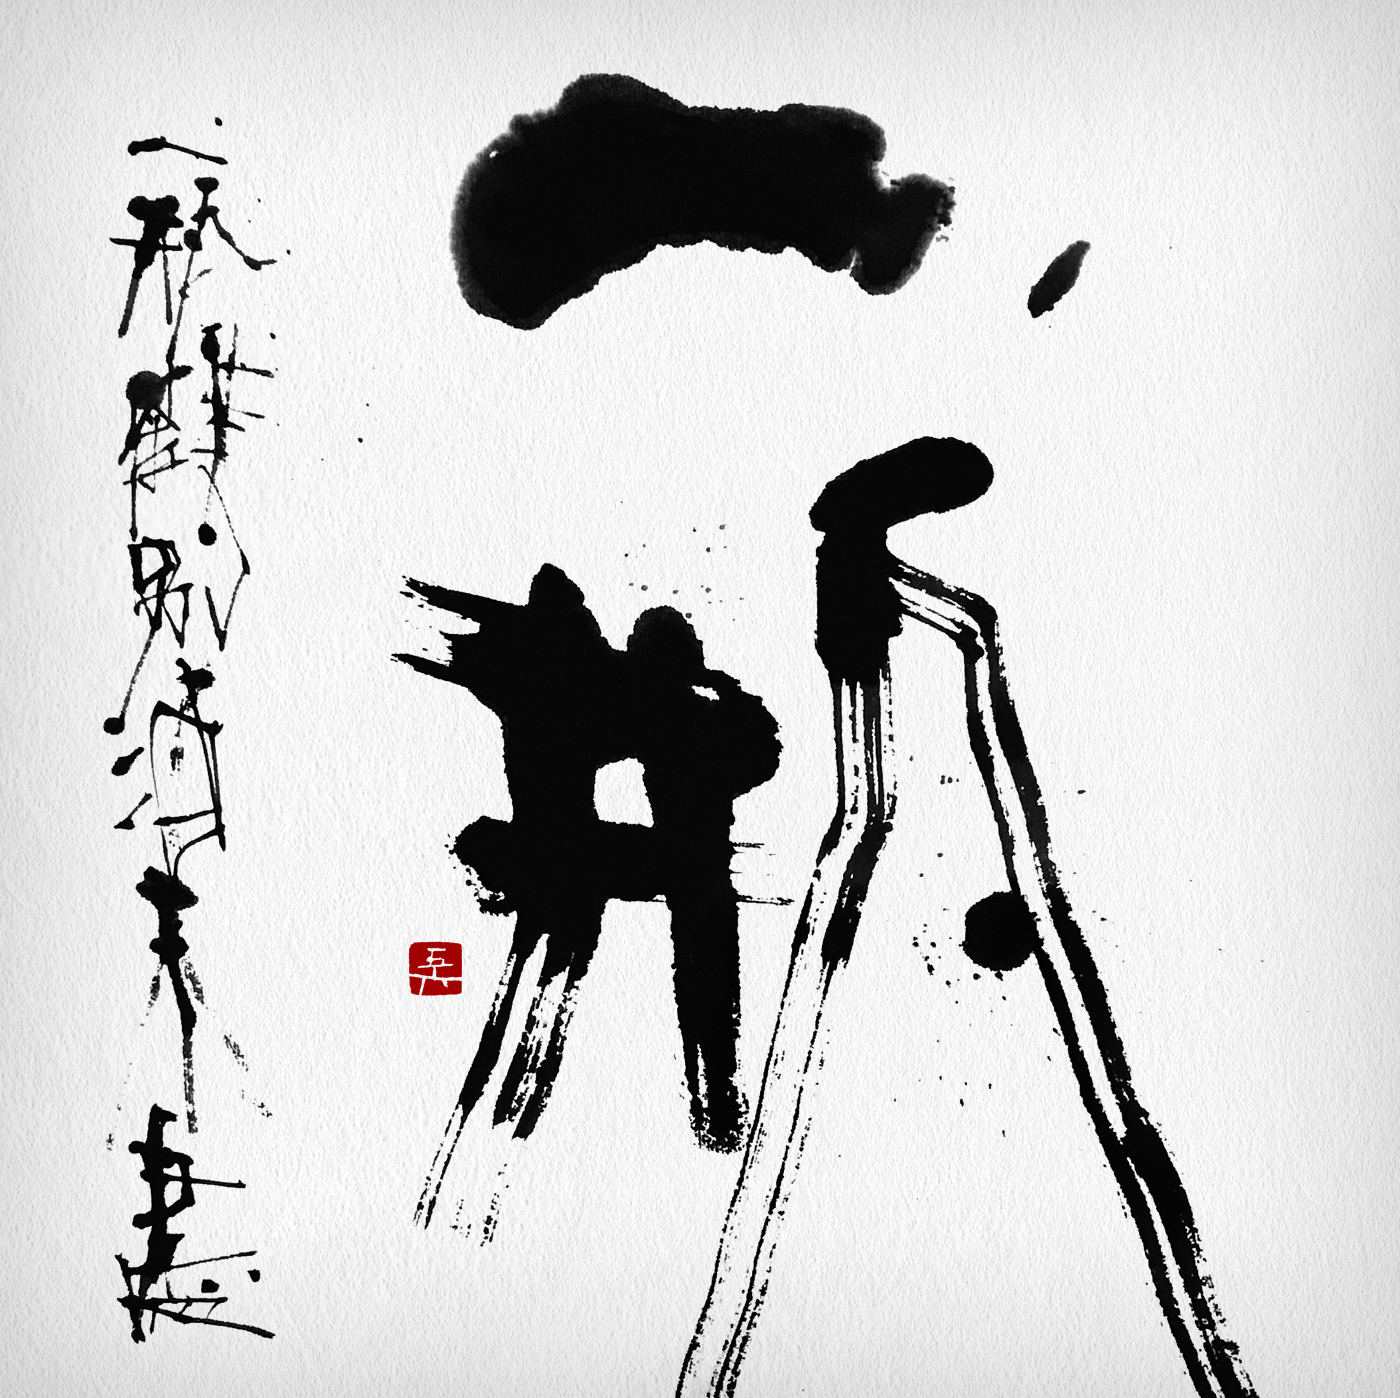 一瓶離別酒 未盡即言行 書道作品 japaneseart japanesecalligraphy